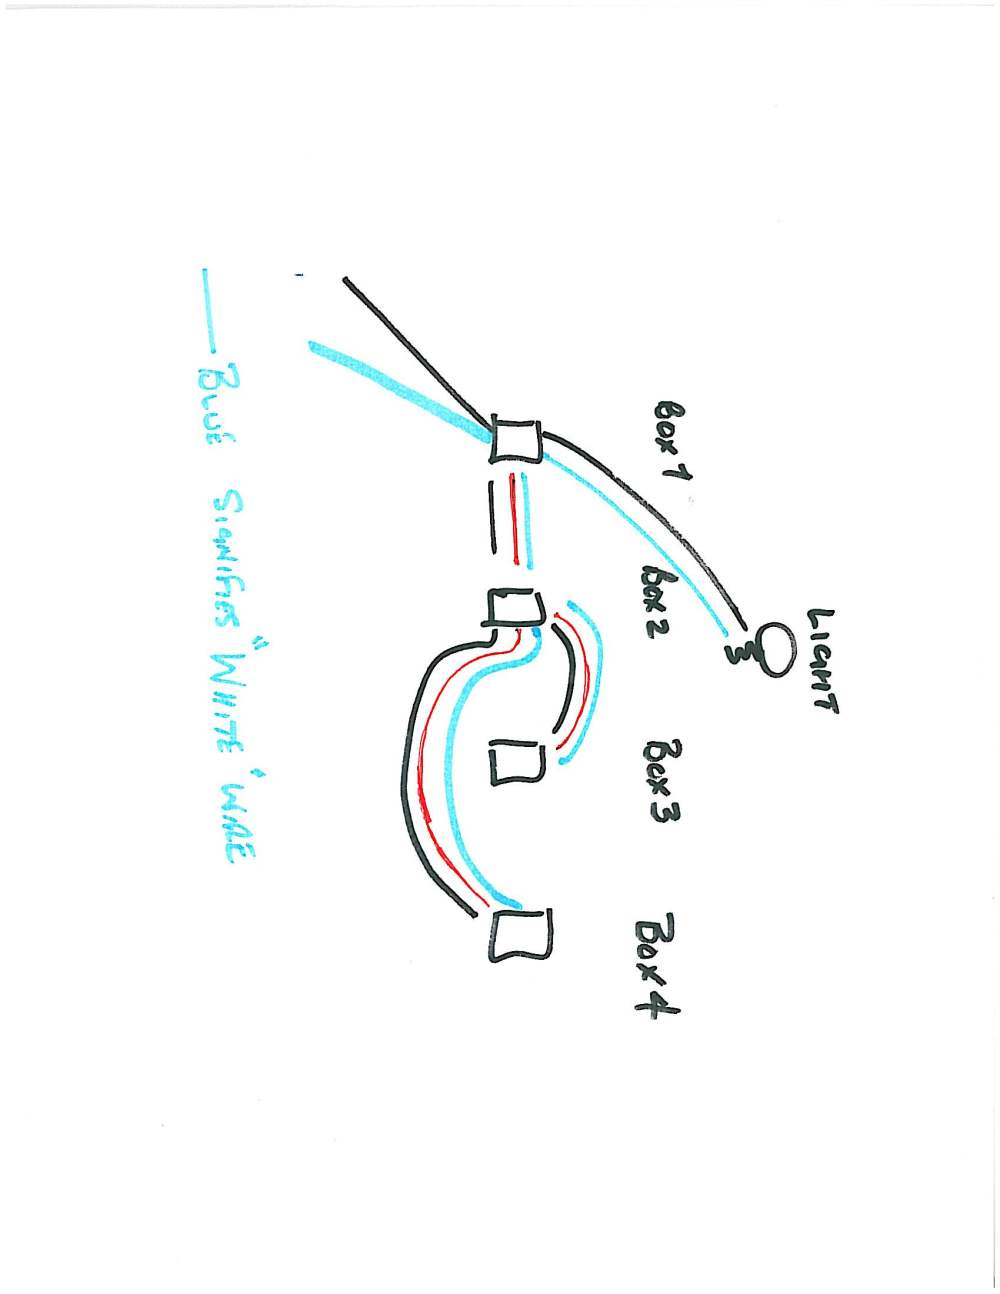 medium resolution of can i use 14 3 wire to connect a new switch on a branch in a 4 way circuit